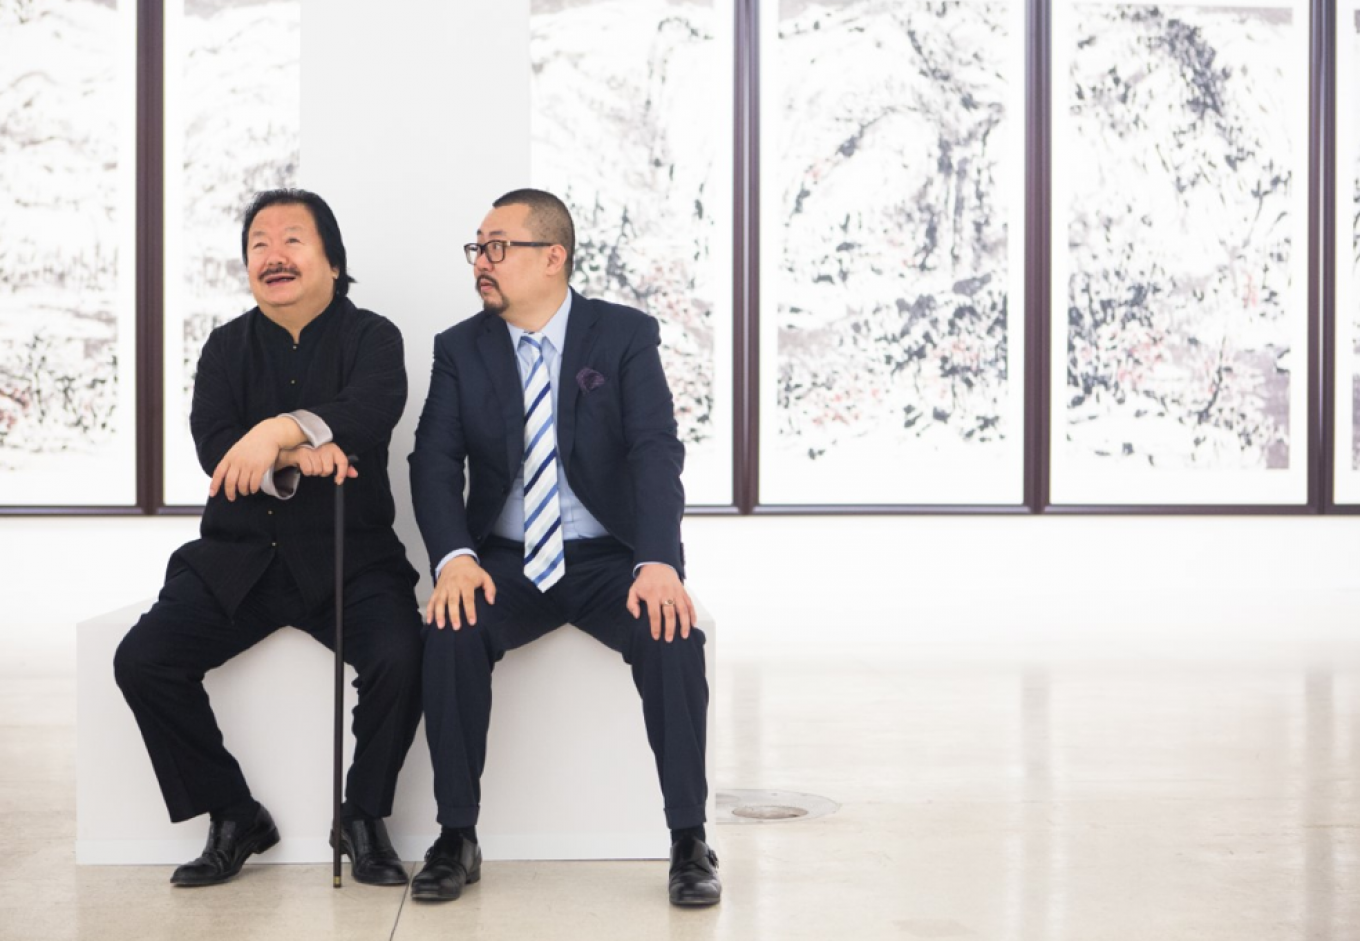 Cui Ruzhuo (left) is still remarkably productive as an artist, even at 72-years-old. Moscow Manege